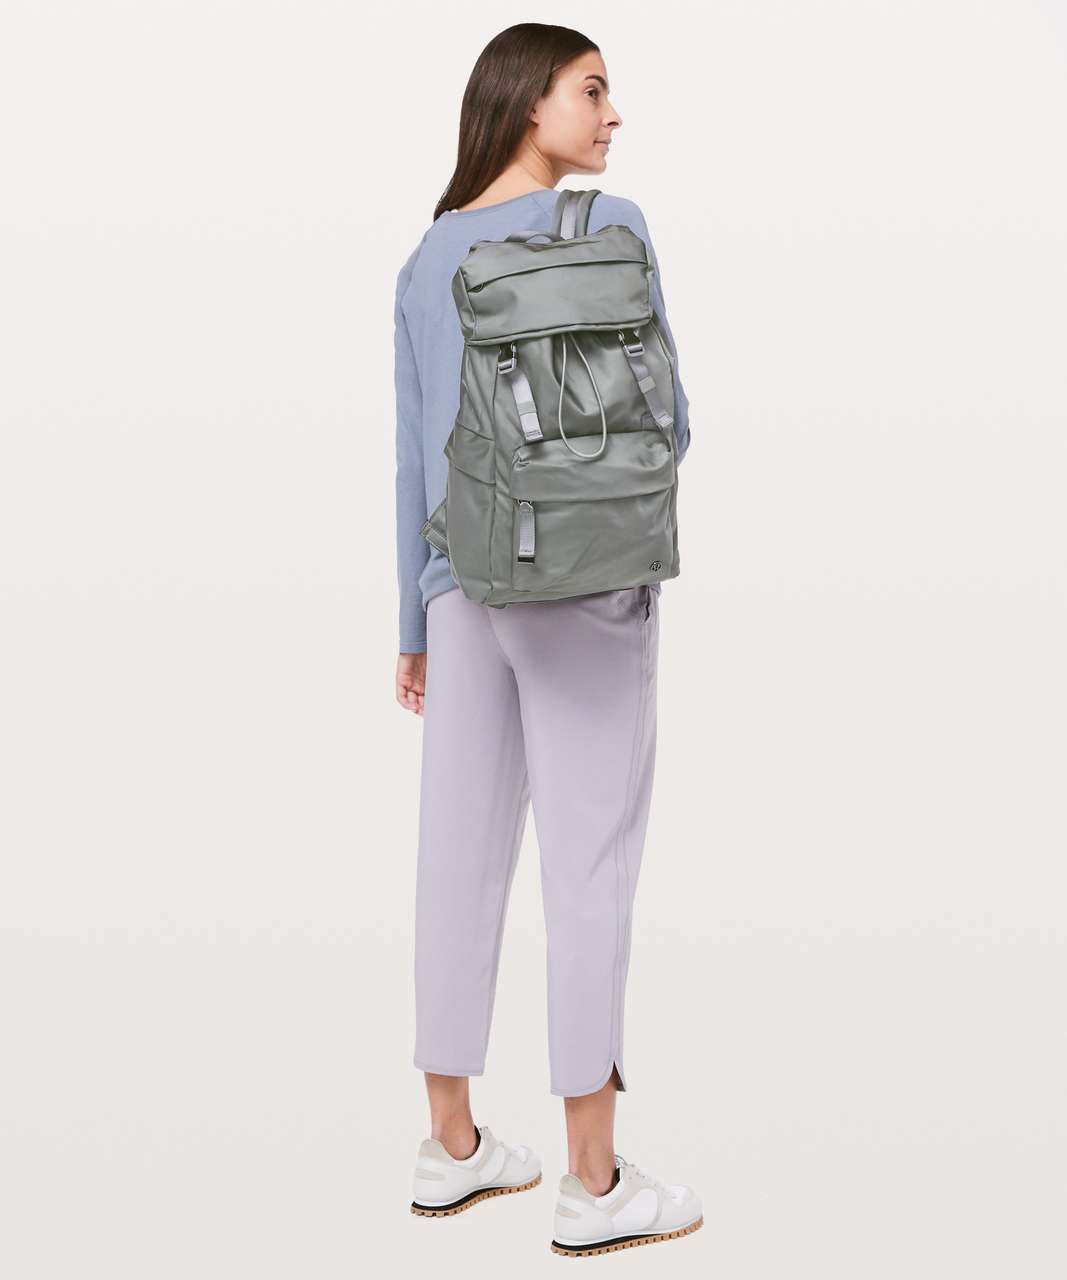 Lululemon On My Level Rucksack *18L - Grey Sage